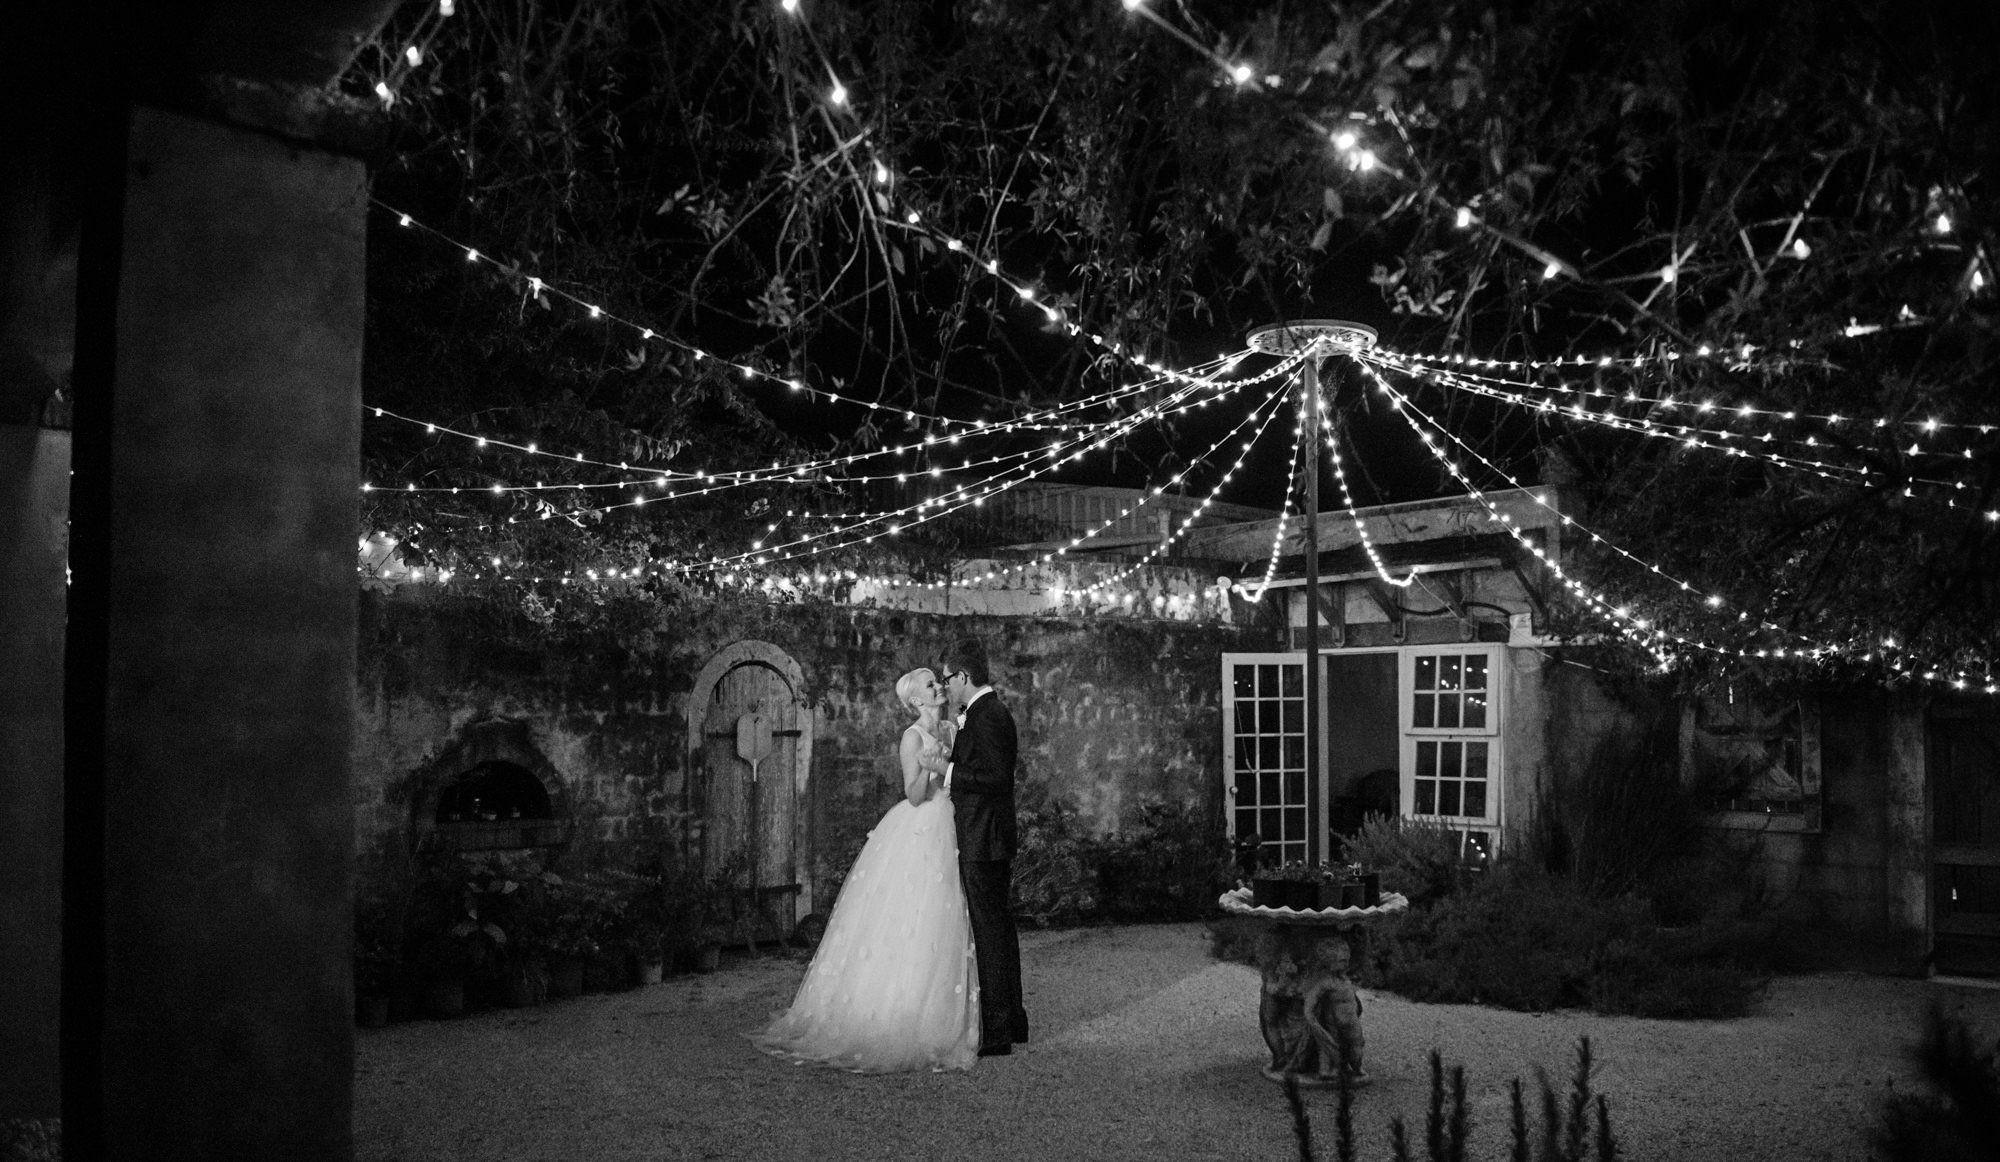 Couple dancing alone under string lights - Studio Impressions Photography